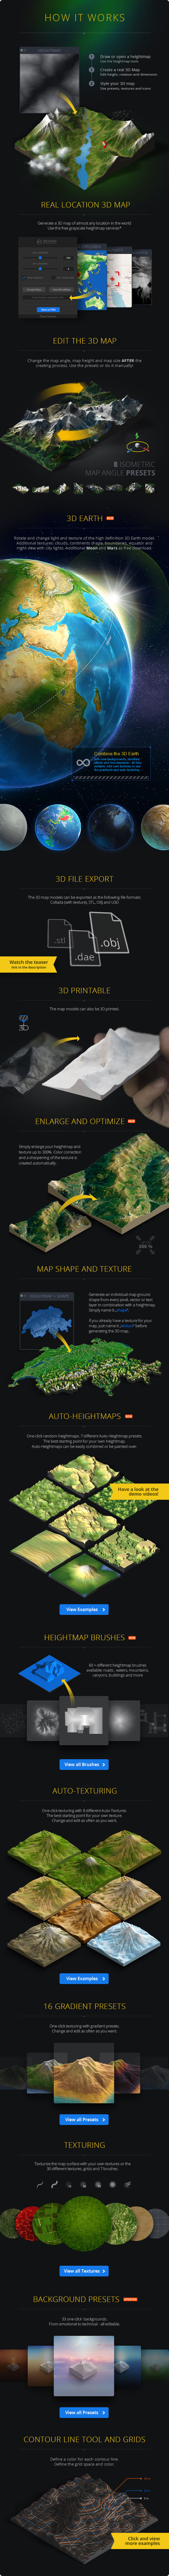 3D Map Generator - Atlas - From Heightmap to real 3D map - 1